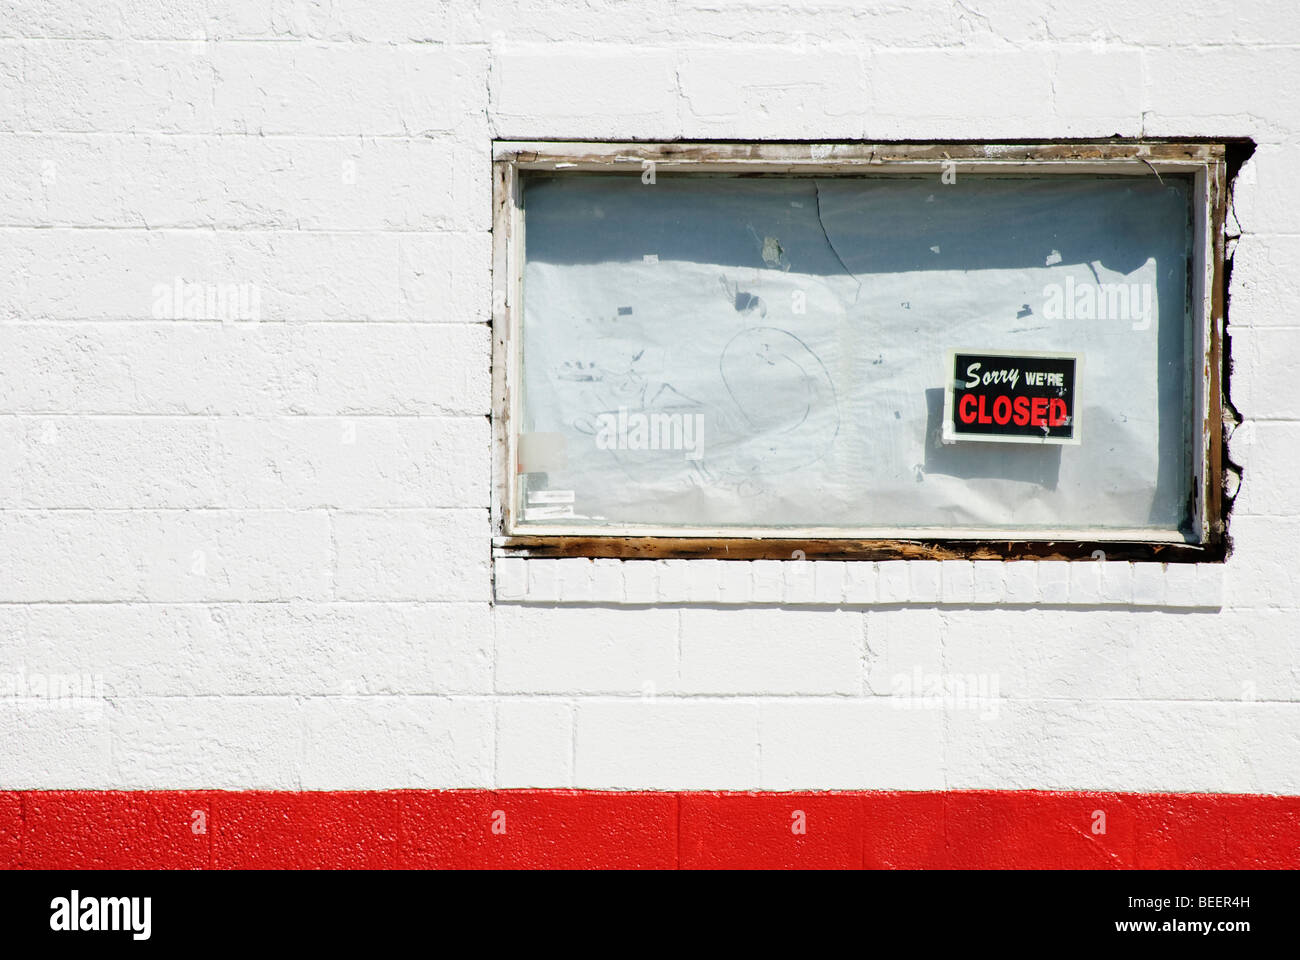 boarded up white window of bankrupt business with 'Sorry we're closed' sign - Stock Image